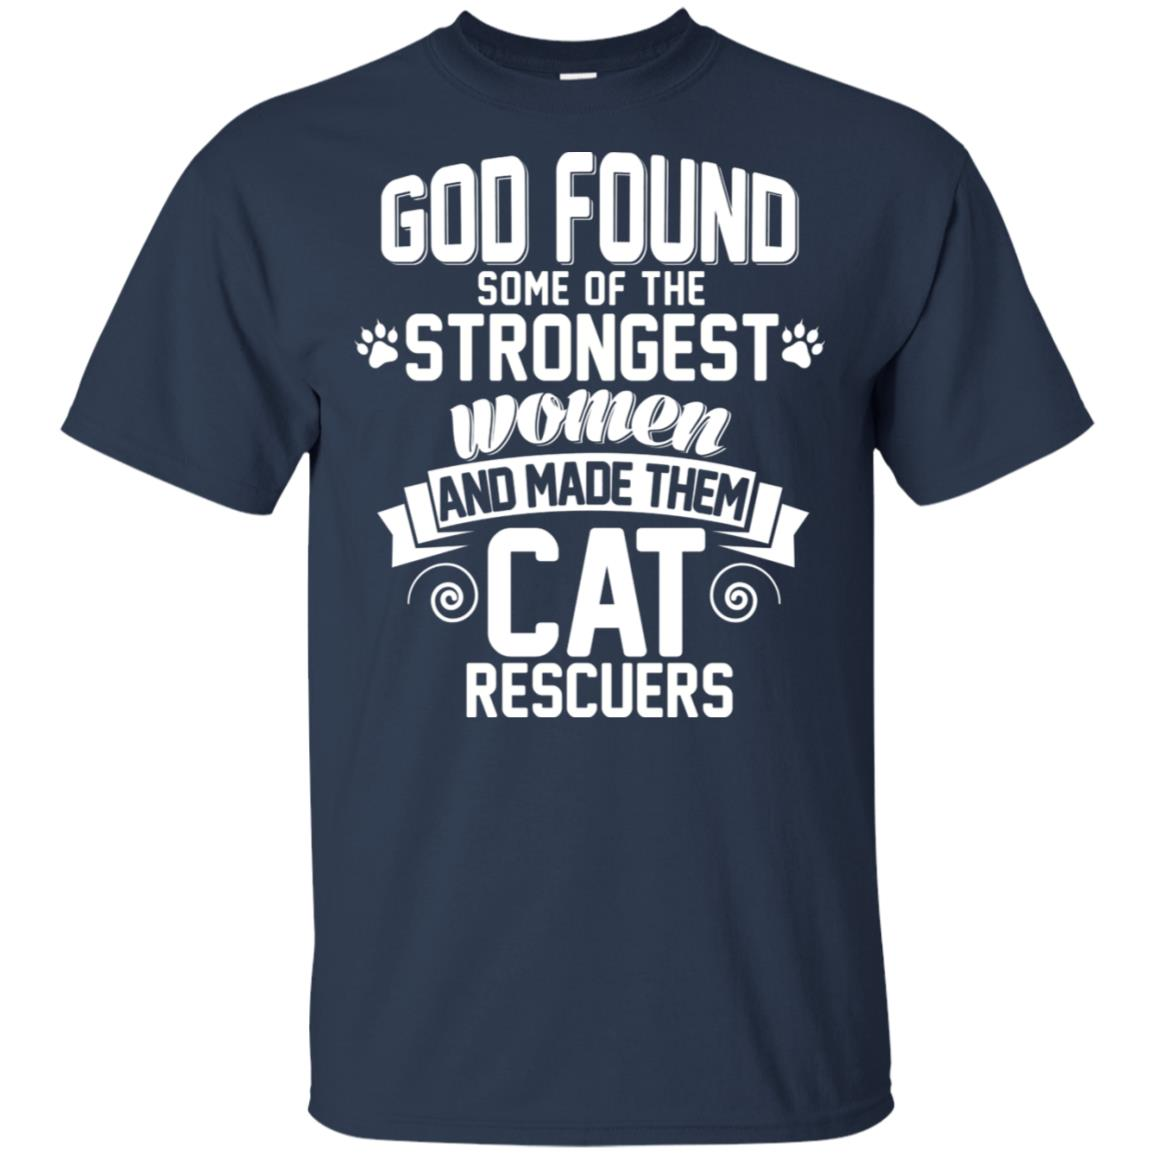 Strongest Cat Rescuers -Tee For Gift Unisex Short Sleeve